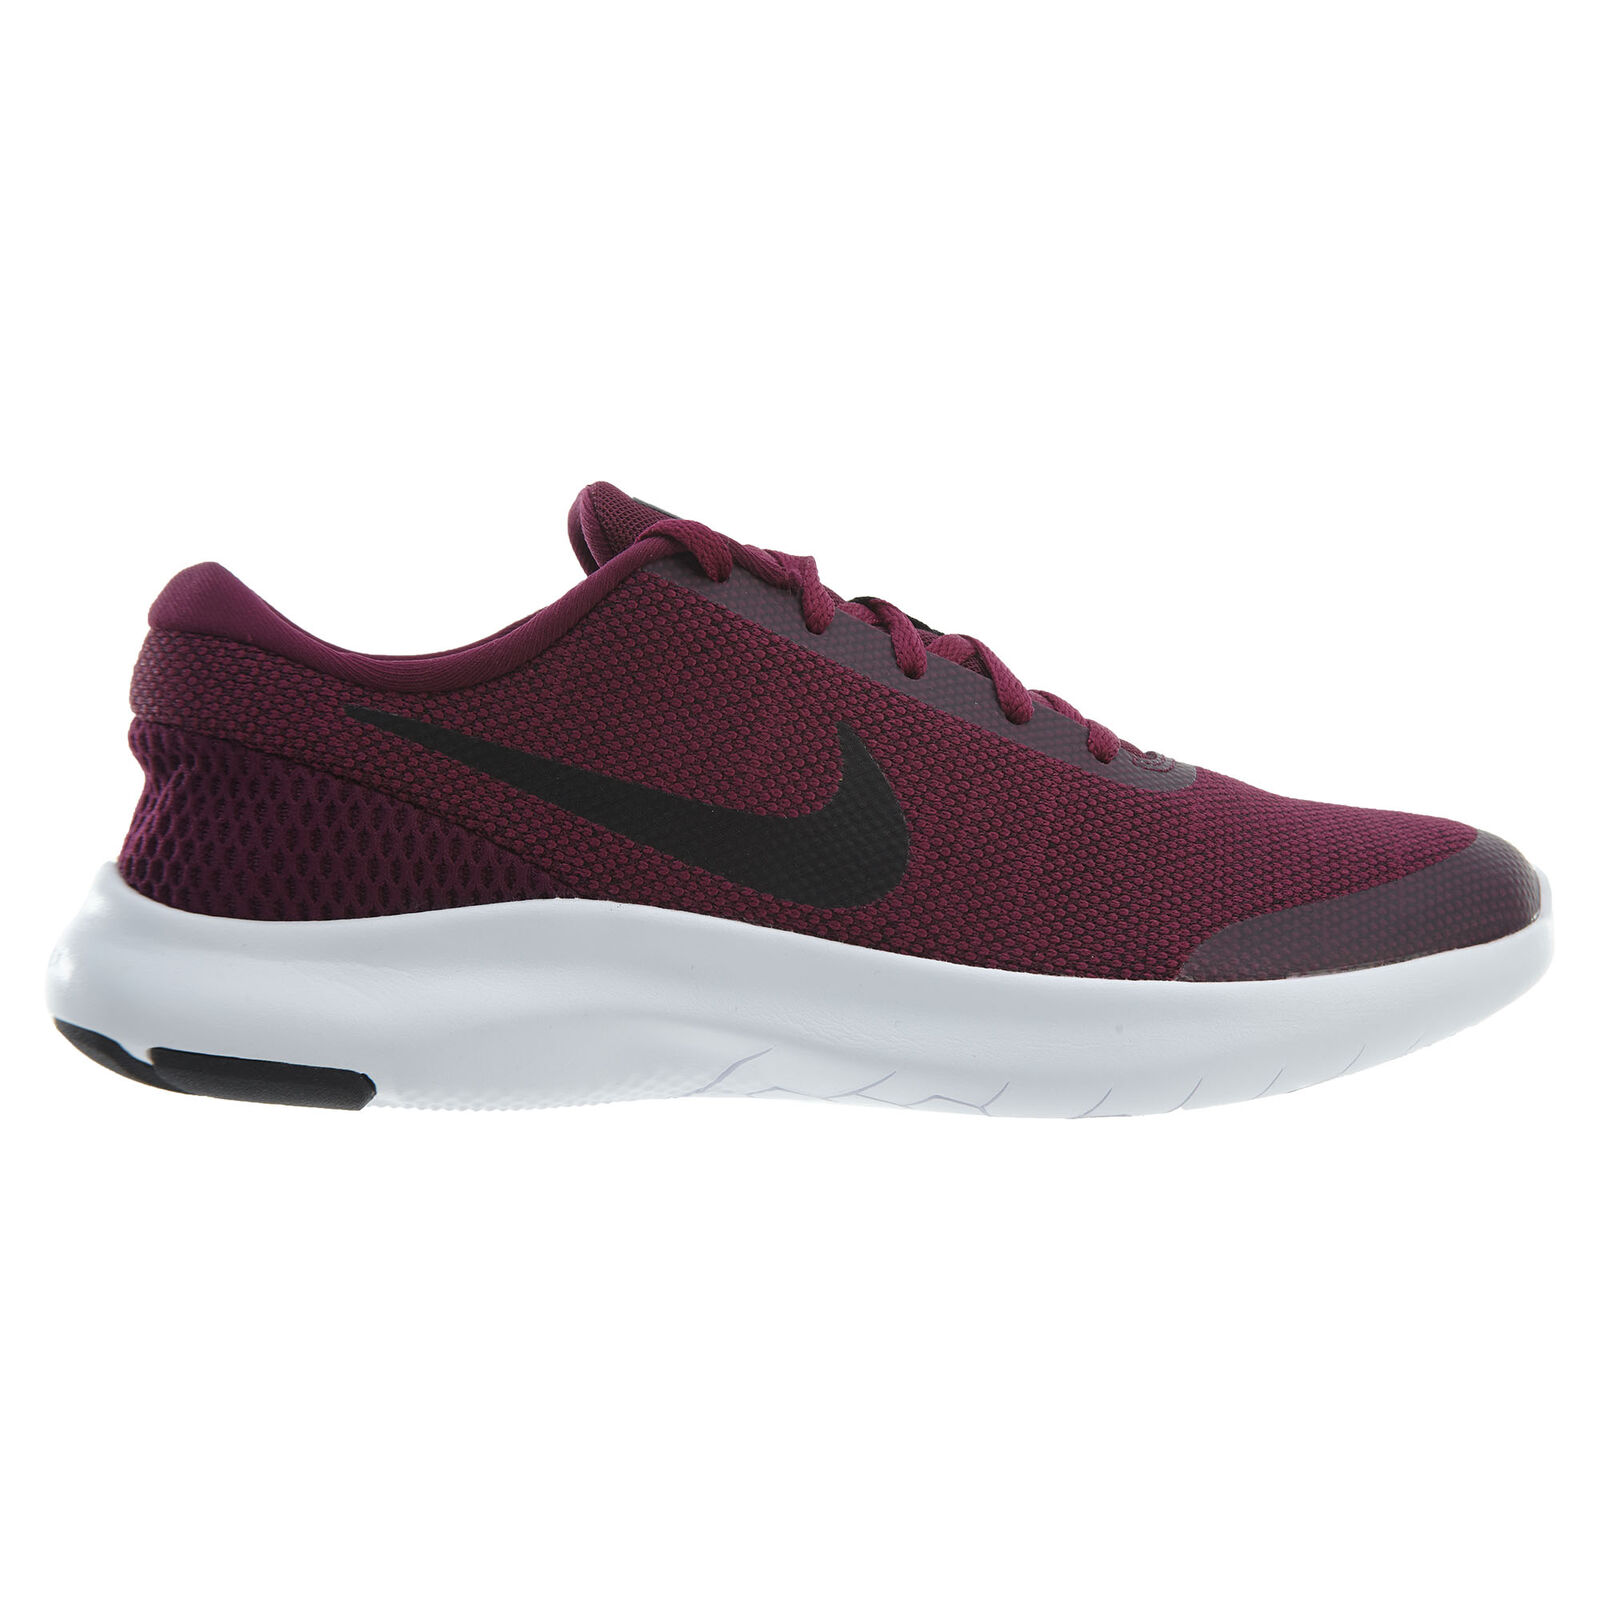 Nike Flex Experience RN 7 Mens 908985-600 Bordeaux Black Running shoes Size 10.5